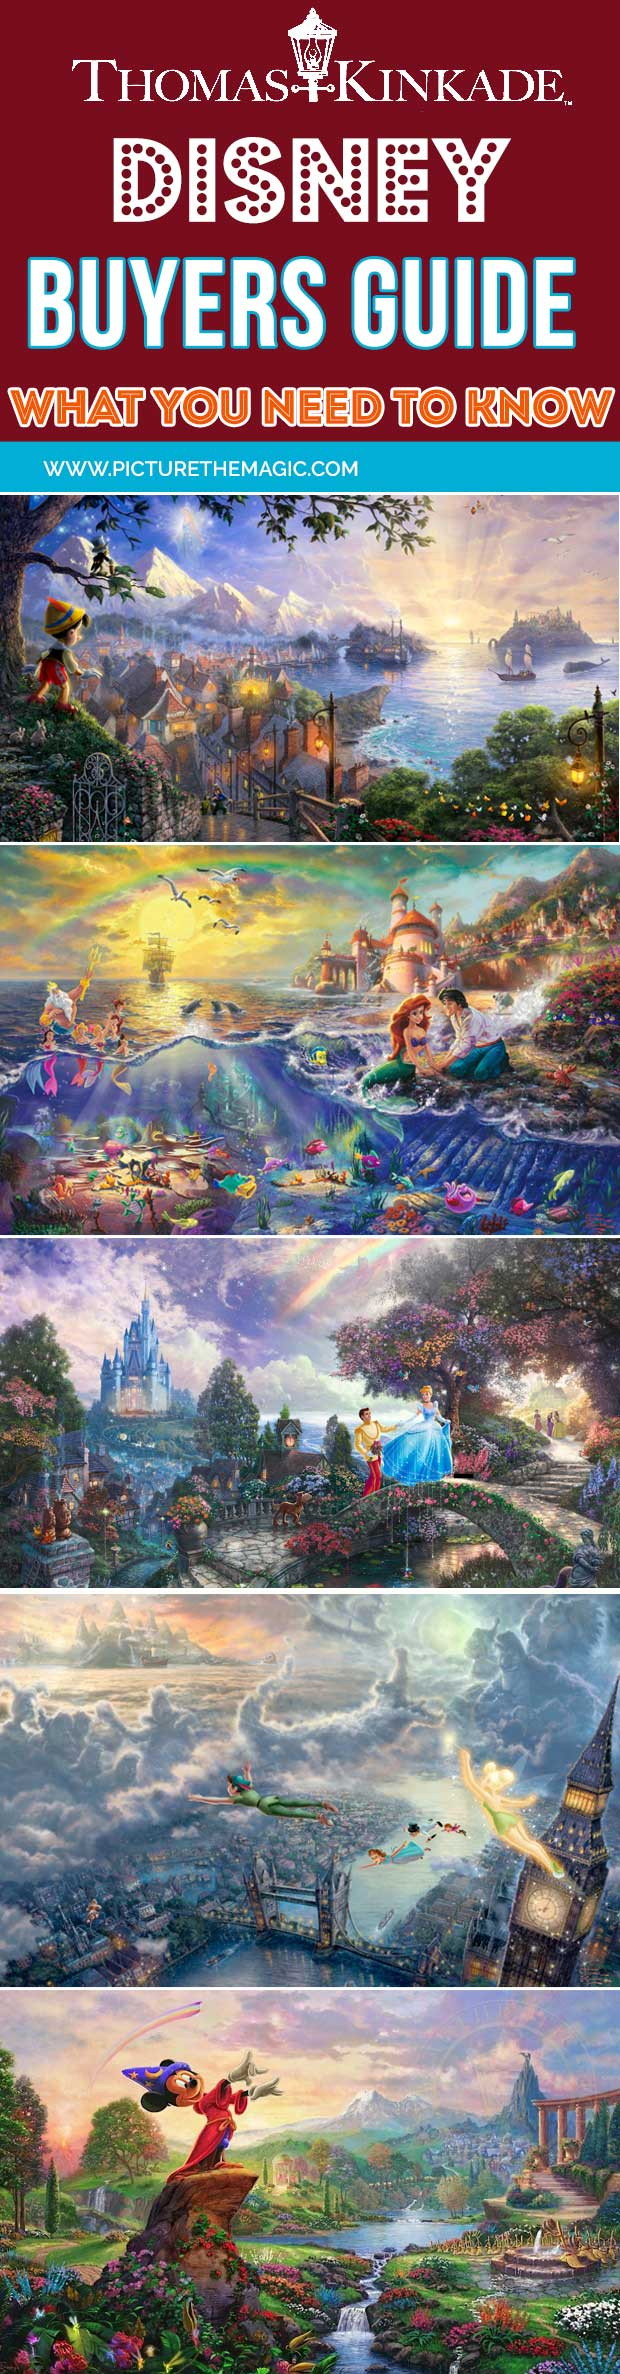 Best of Thomas Kinkade's Disney Collection. Check out this buyer's guide and reviews!